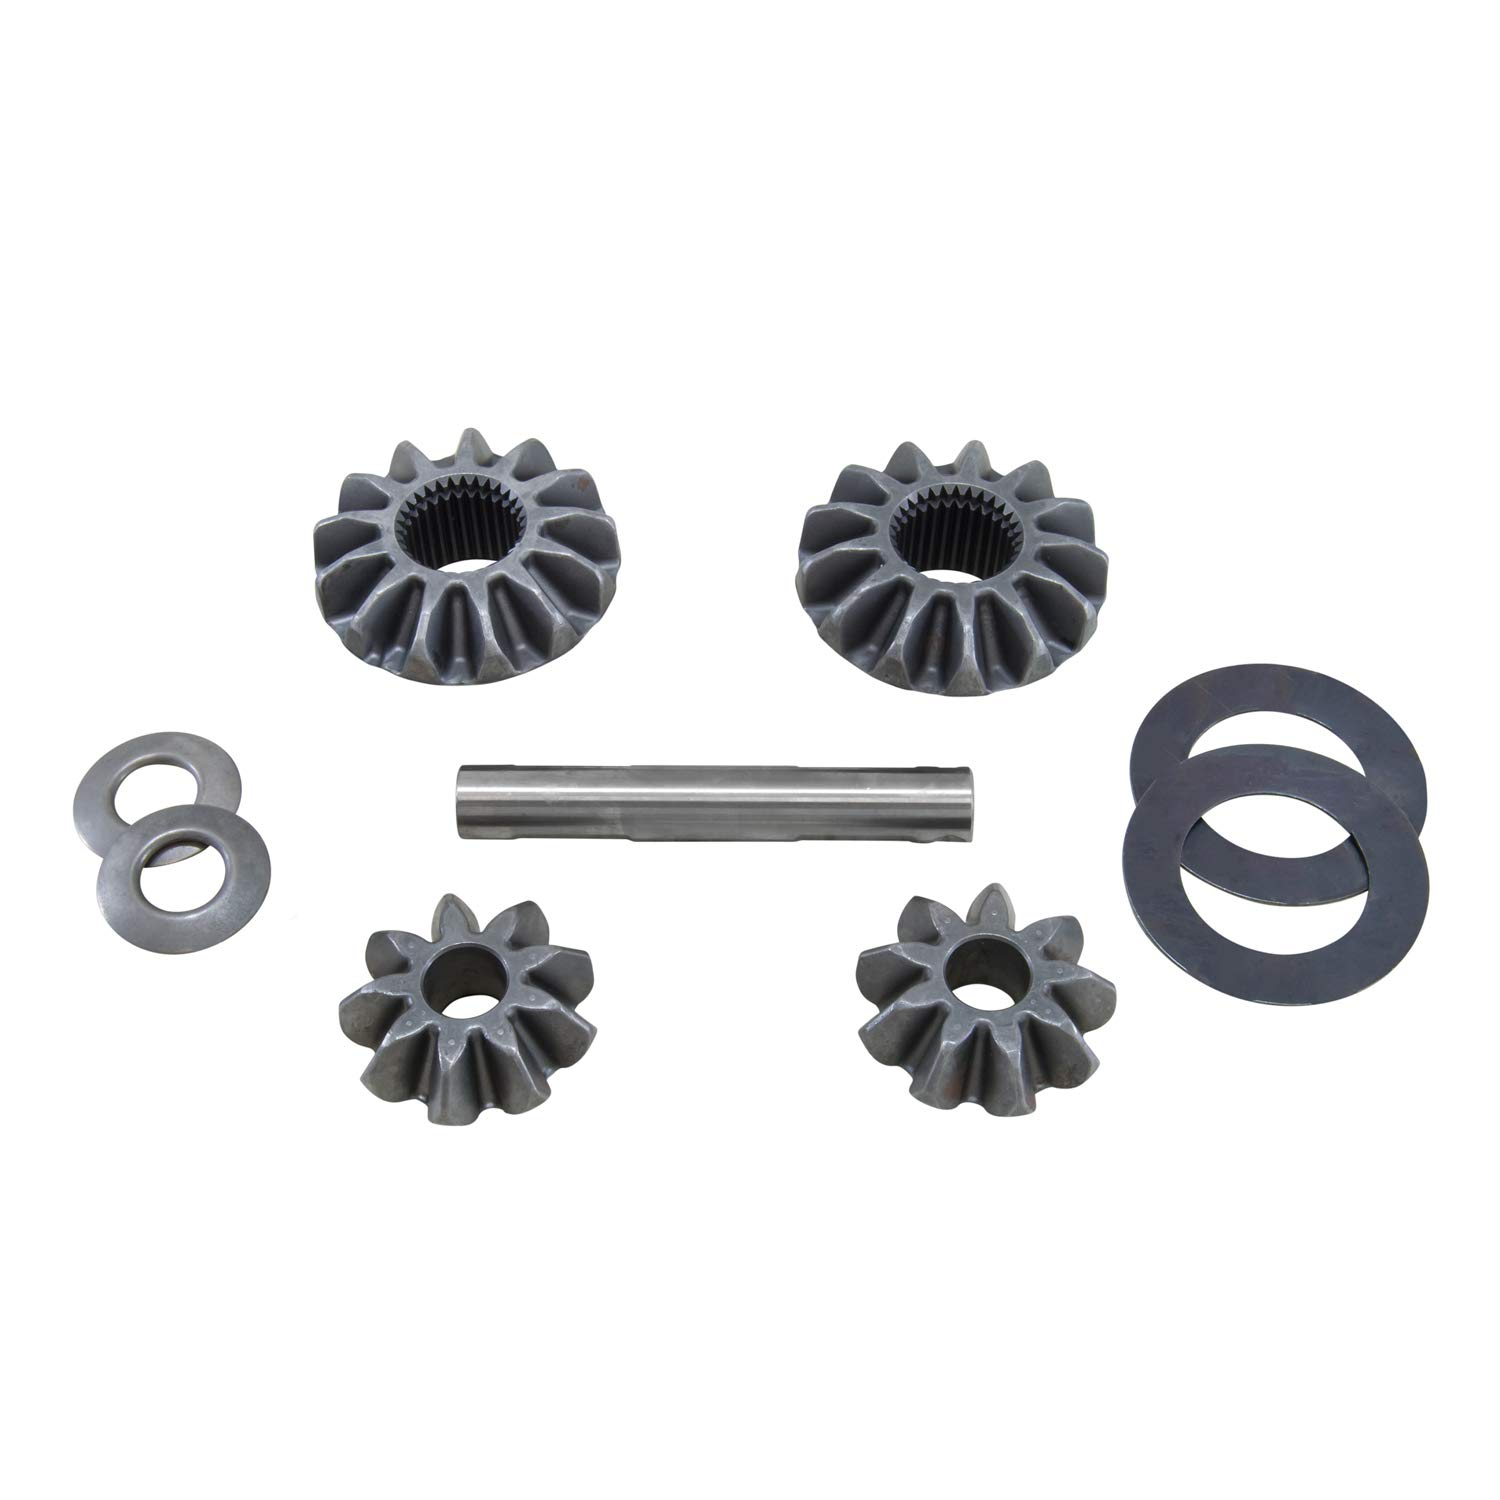 YPKGM7.5-S-26 Standard Open Spider Gear Kit for GM 7.5 Differential Yukon